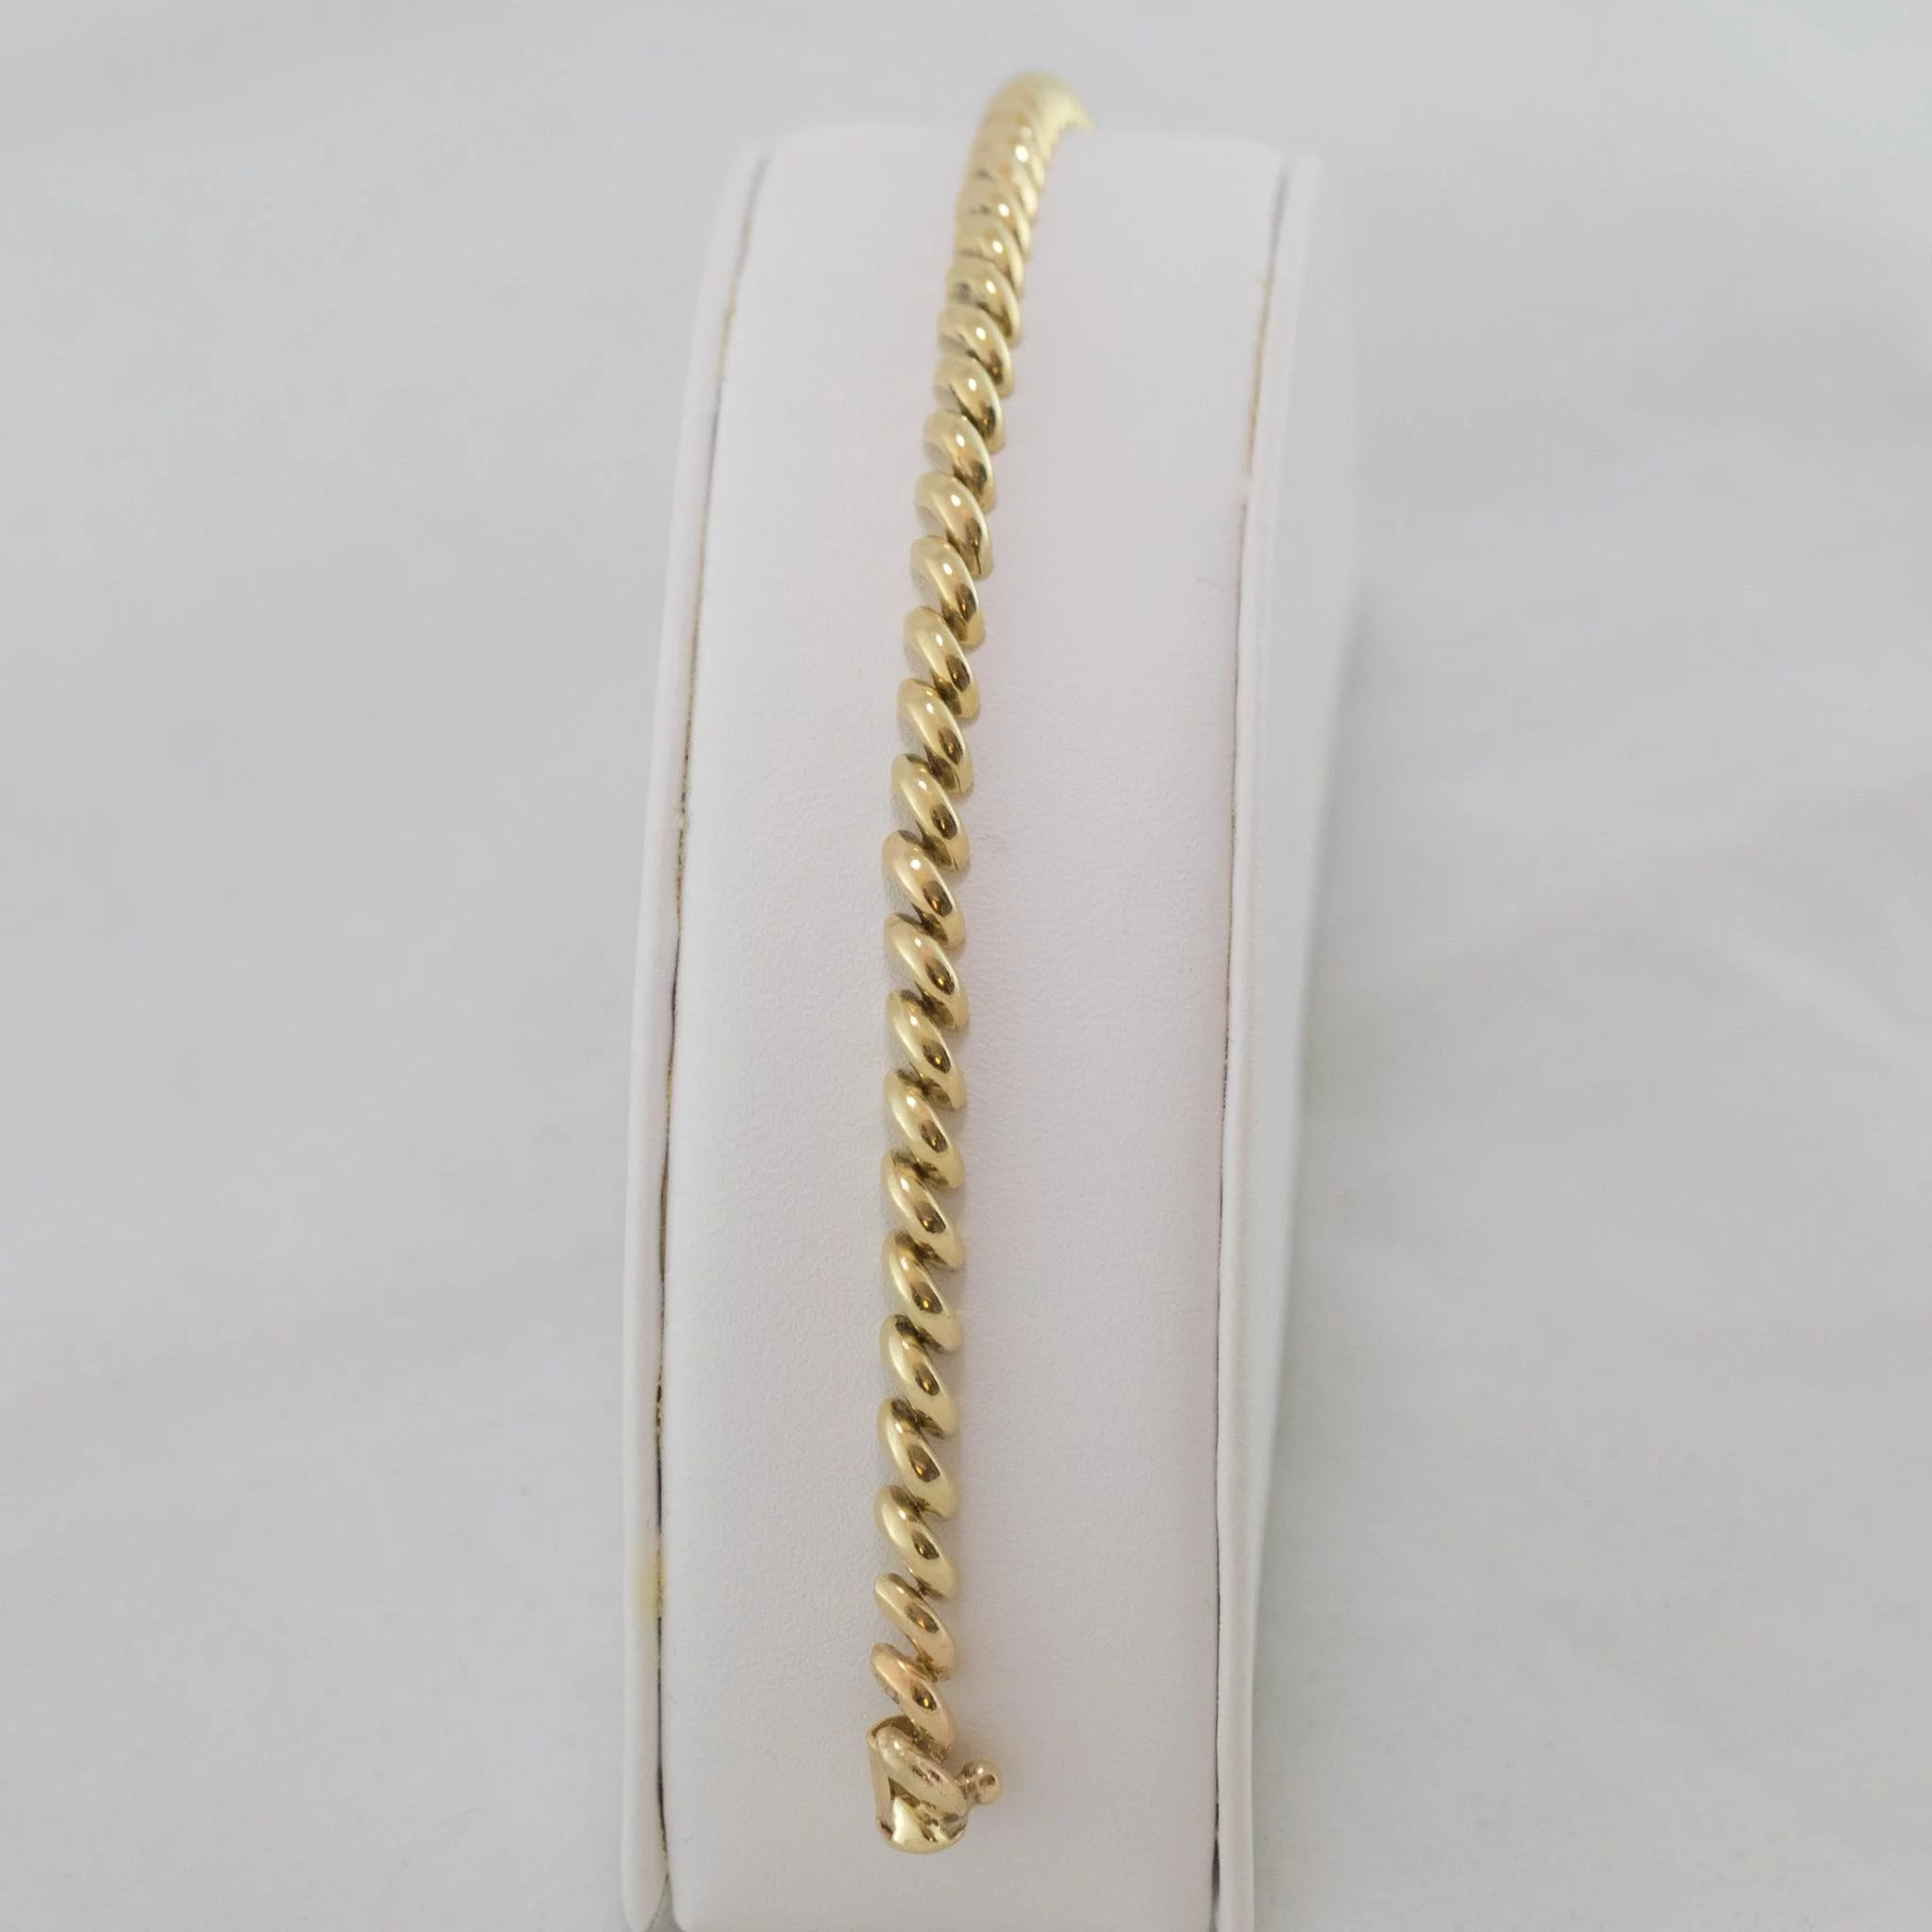 14K Yellow Gold | San Marco Bracelet 7-1/4 Inches : Ann-tiques and ...